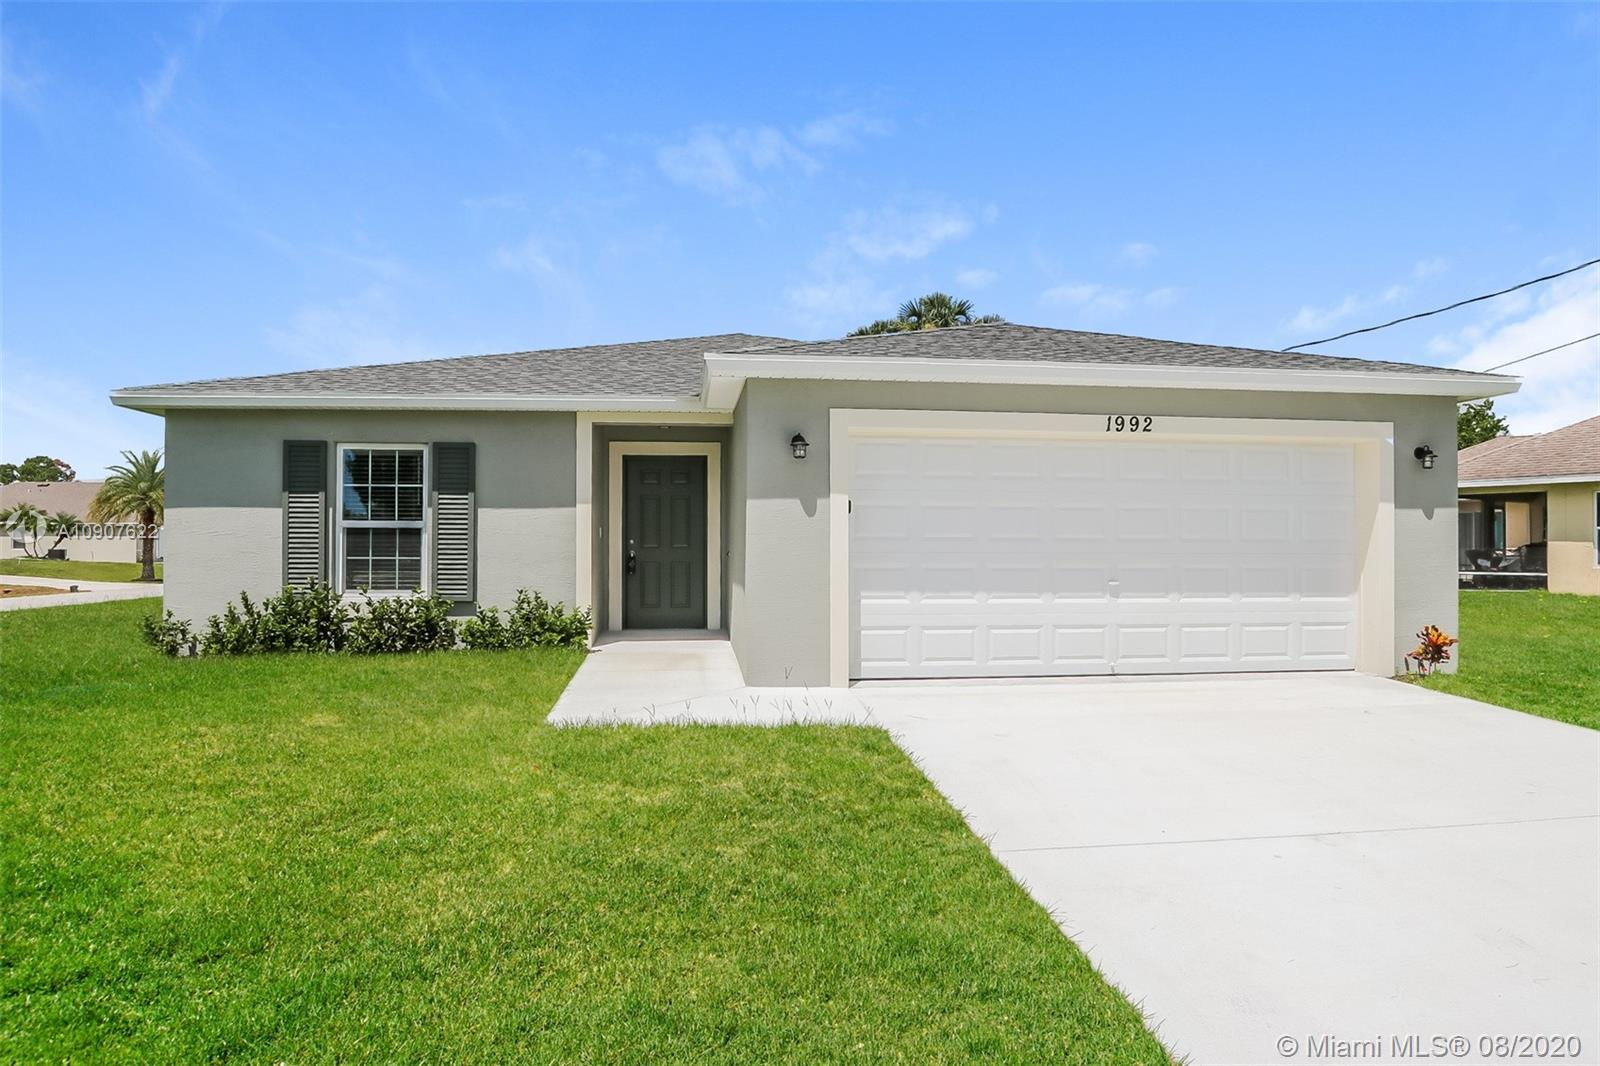 1992 Sunglow St, Port St. Lucie FL 34953